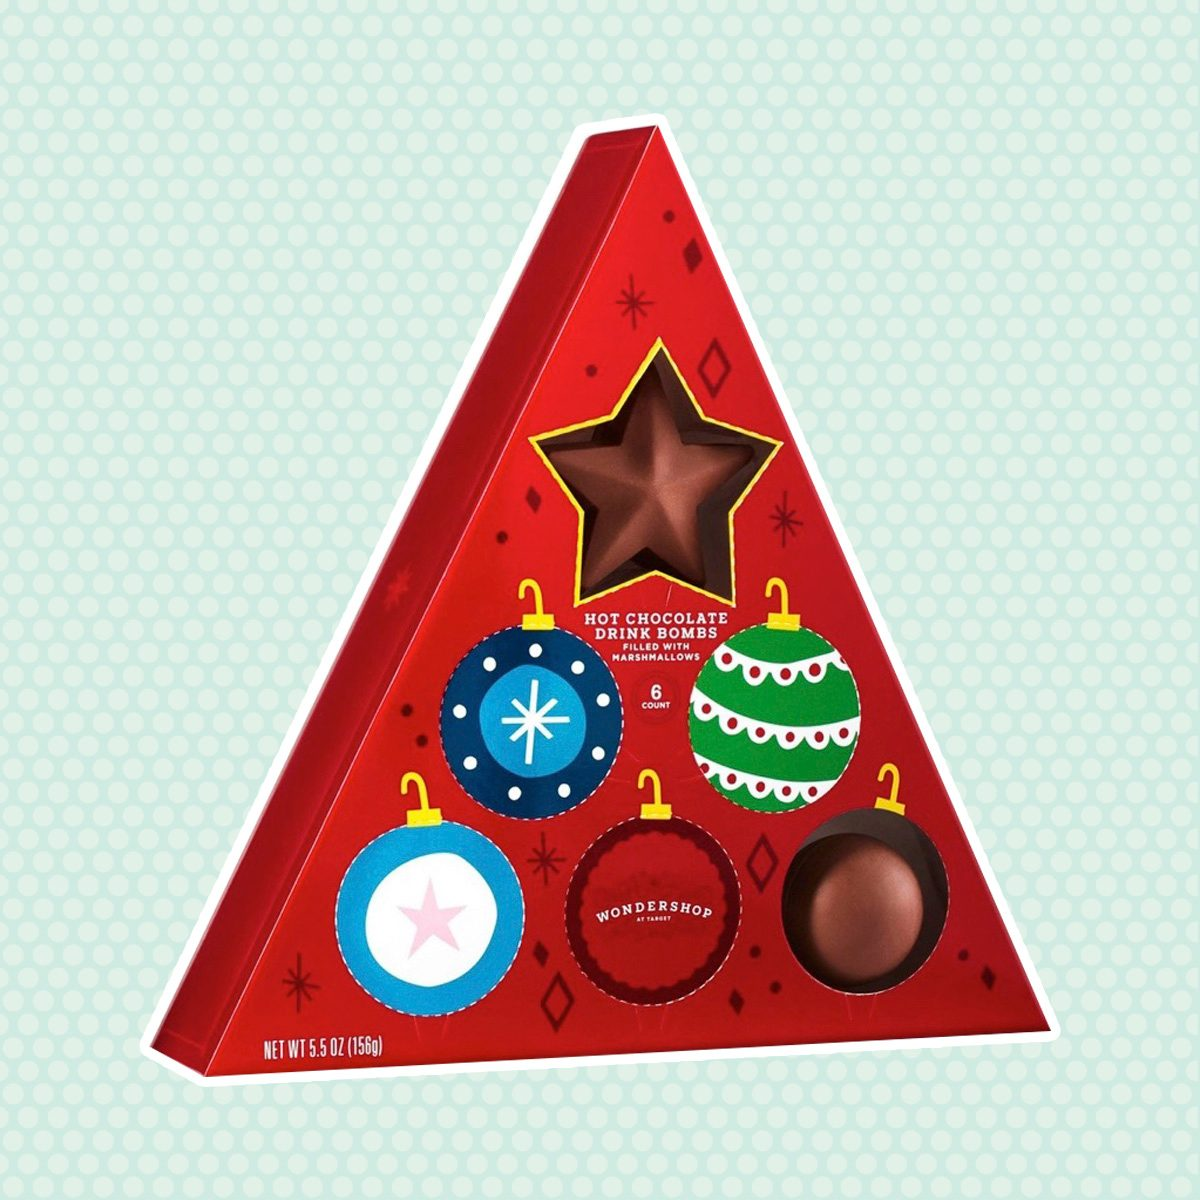 Holiday Advent Triangle Hot Chocolate Drink Bomb - 5.5oz - Wondershop™